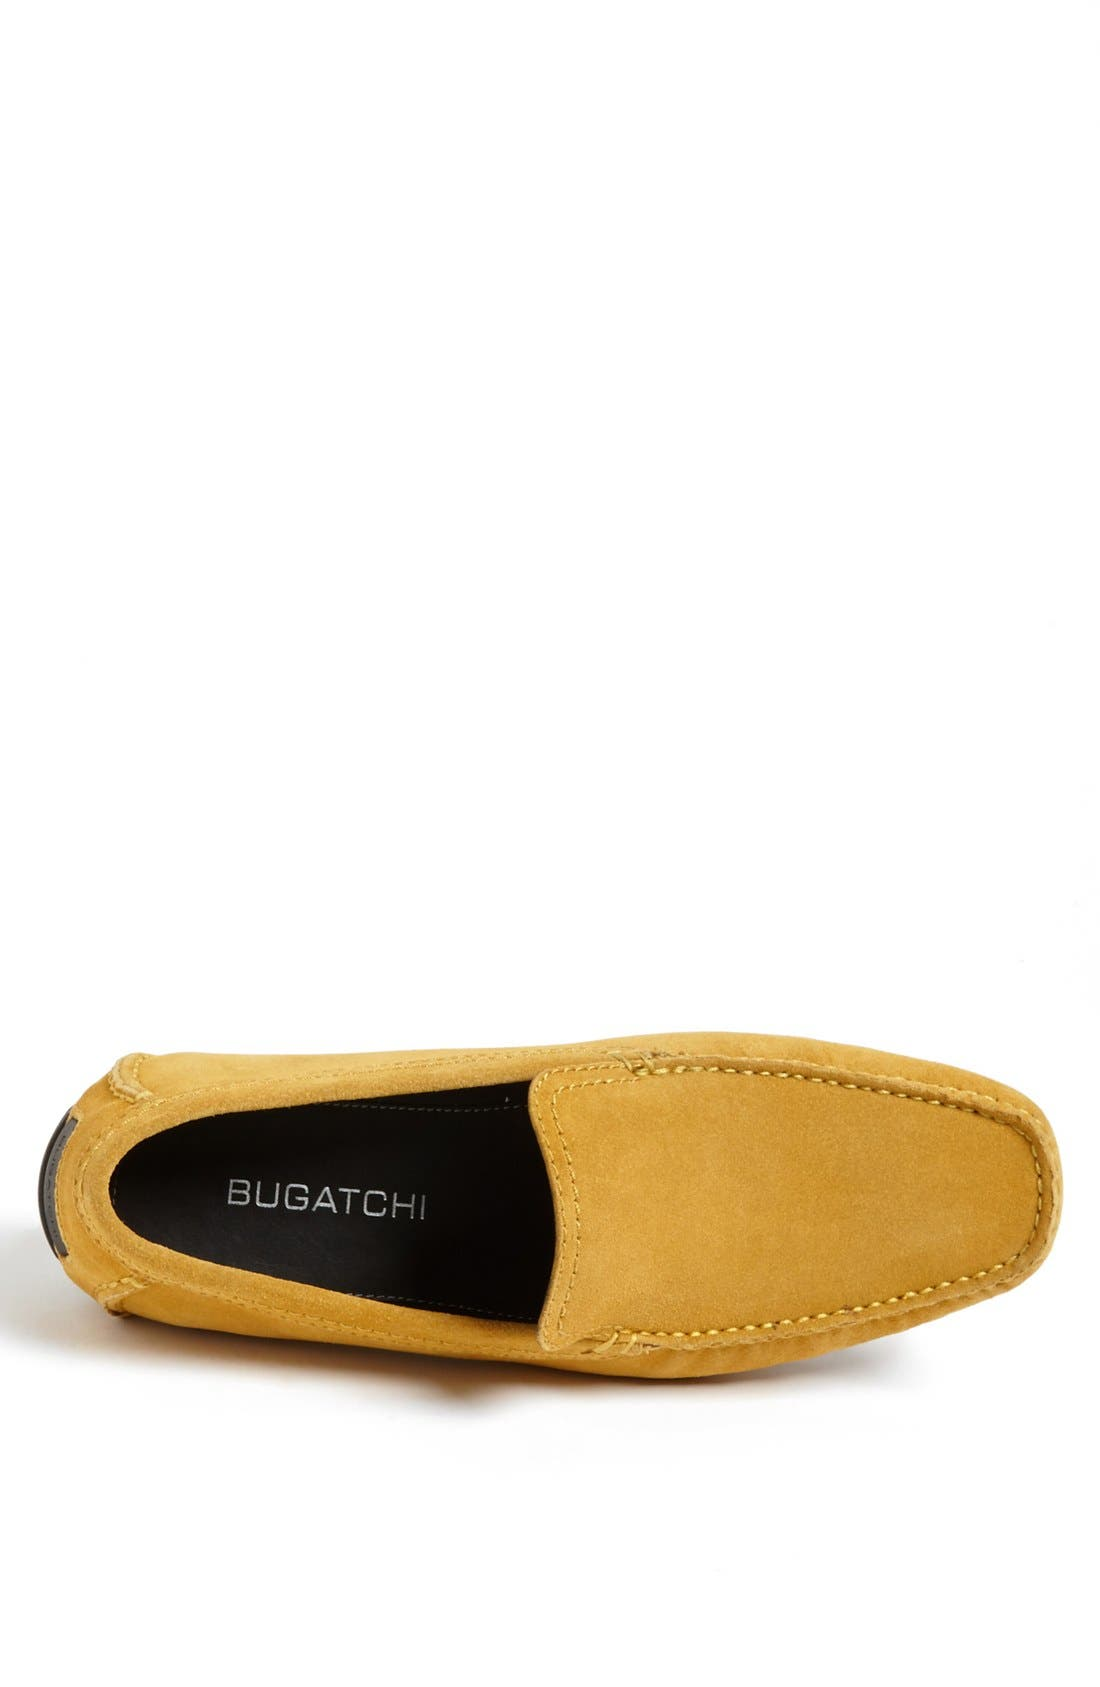 Alternate Image 3  - Bugatchi 'Picasso' Driving Shoe